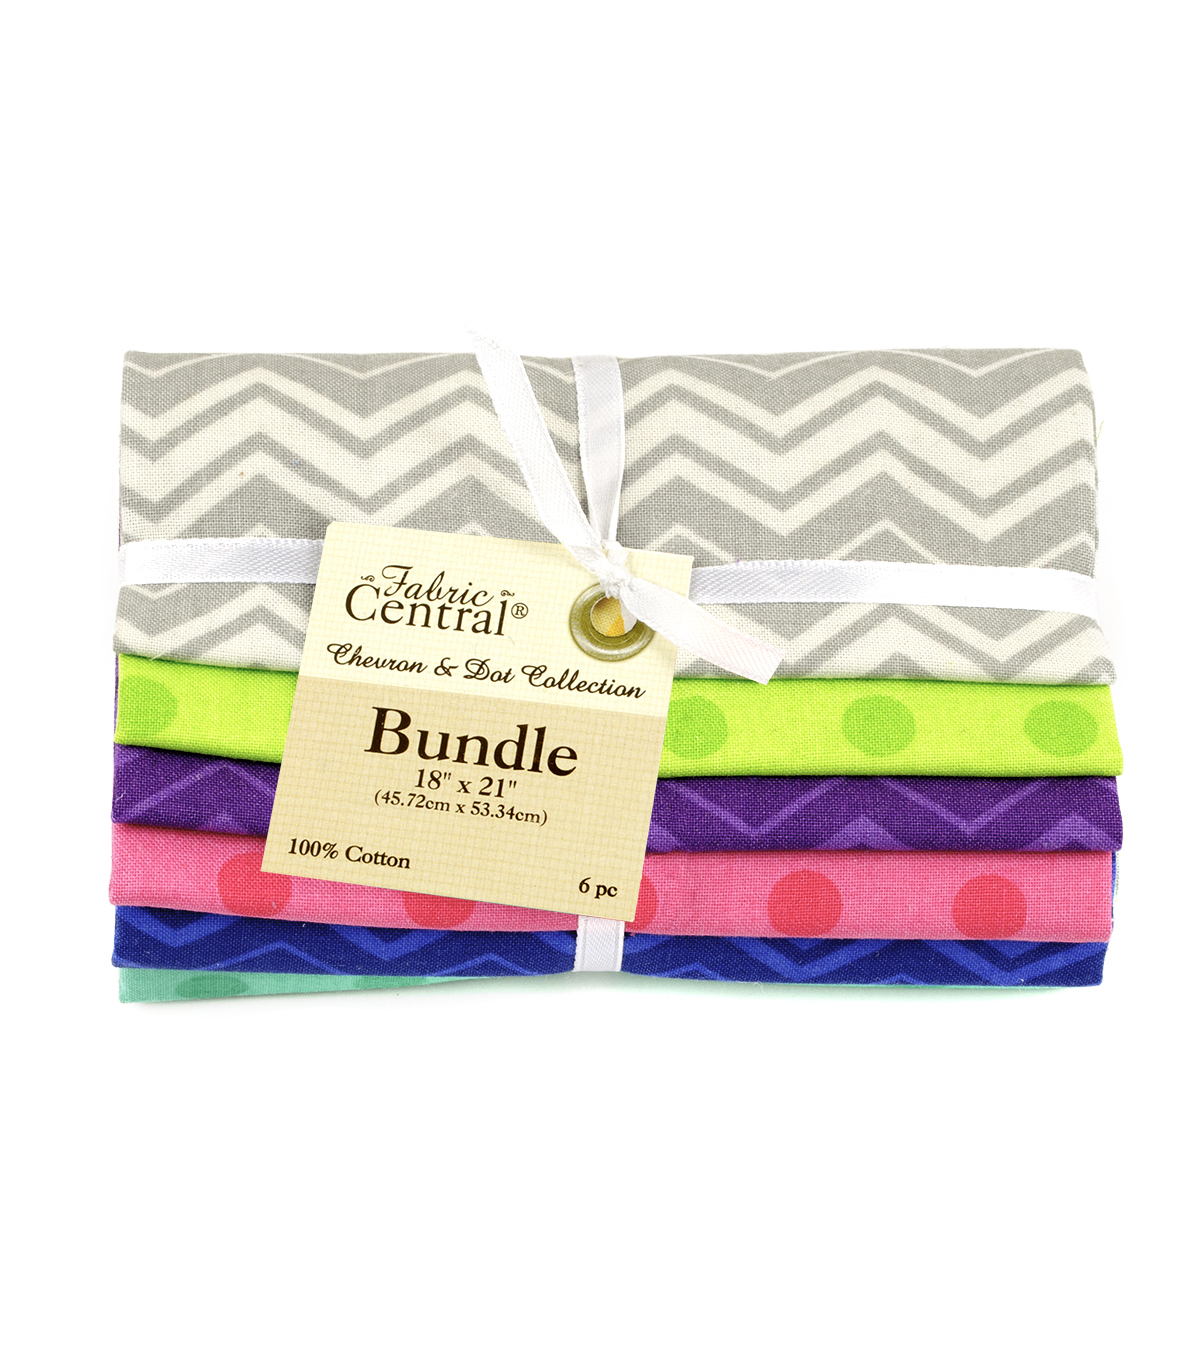 Fabric-Central Cotton Fabric-Chevdot Bundle 2